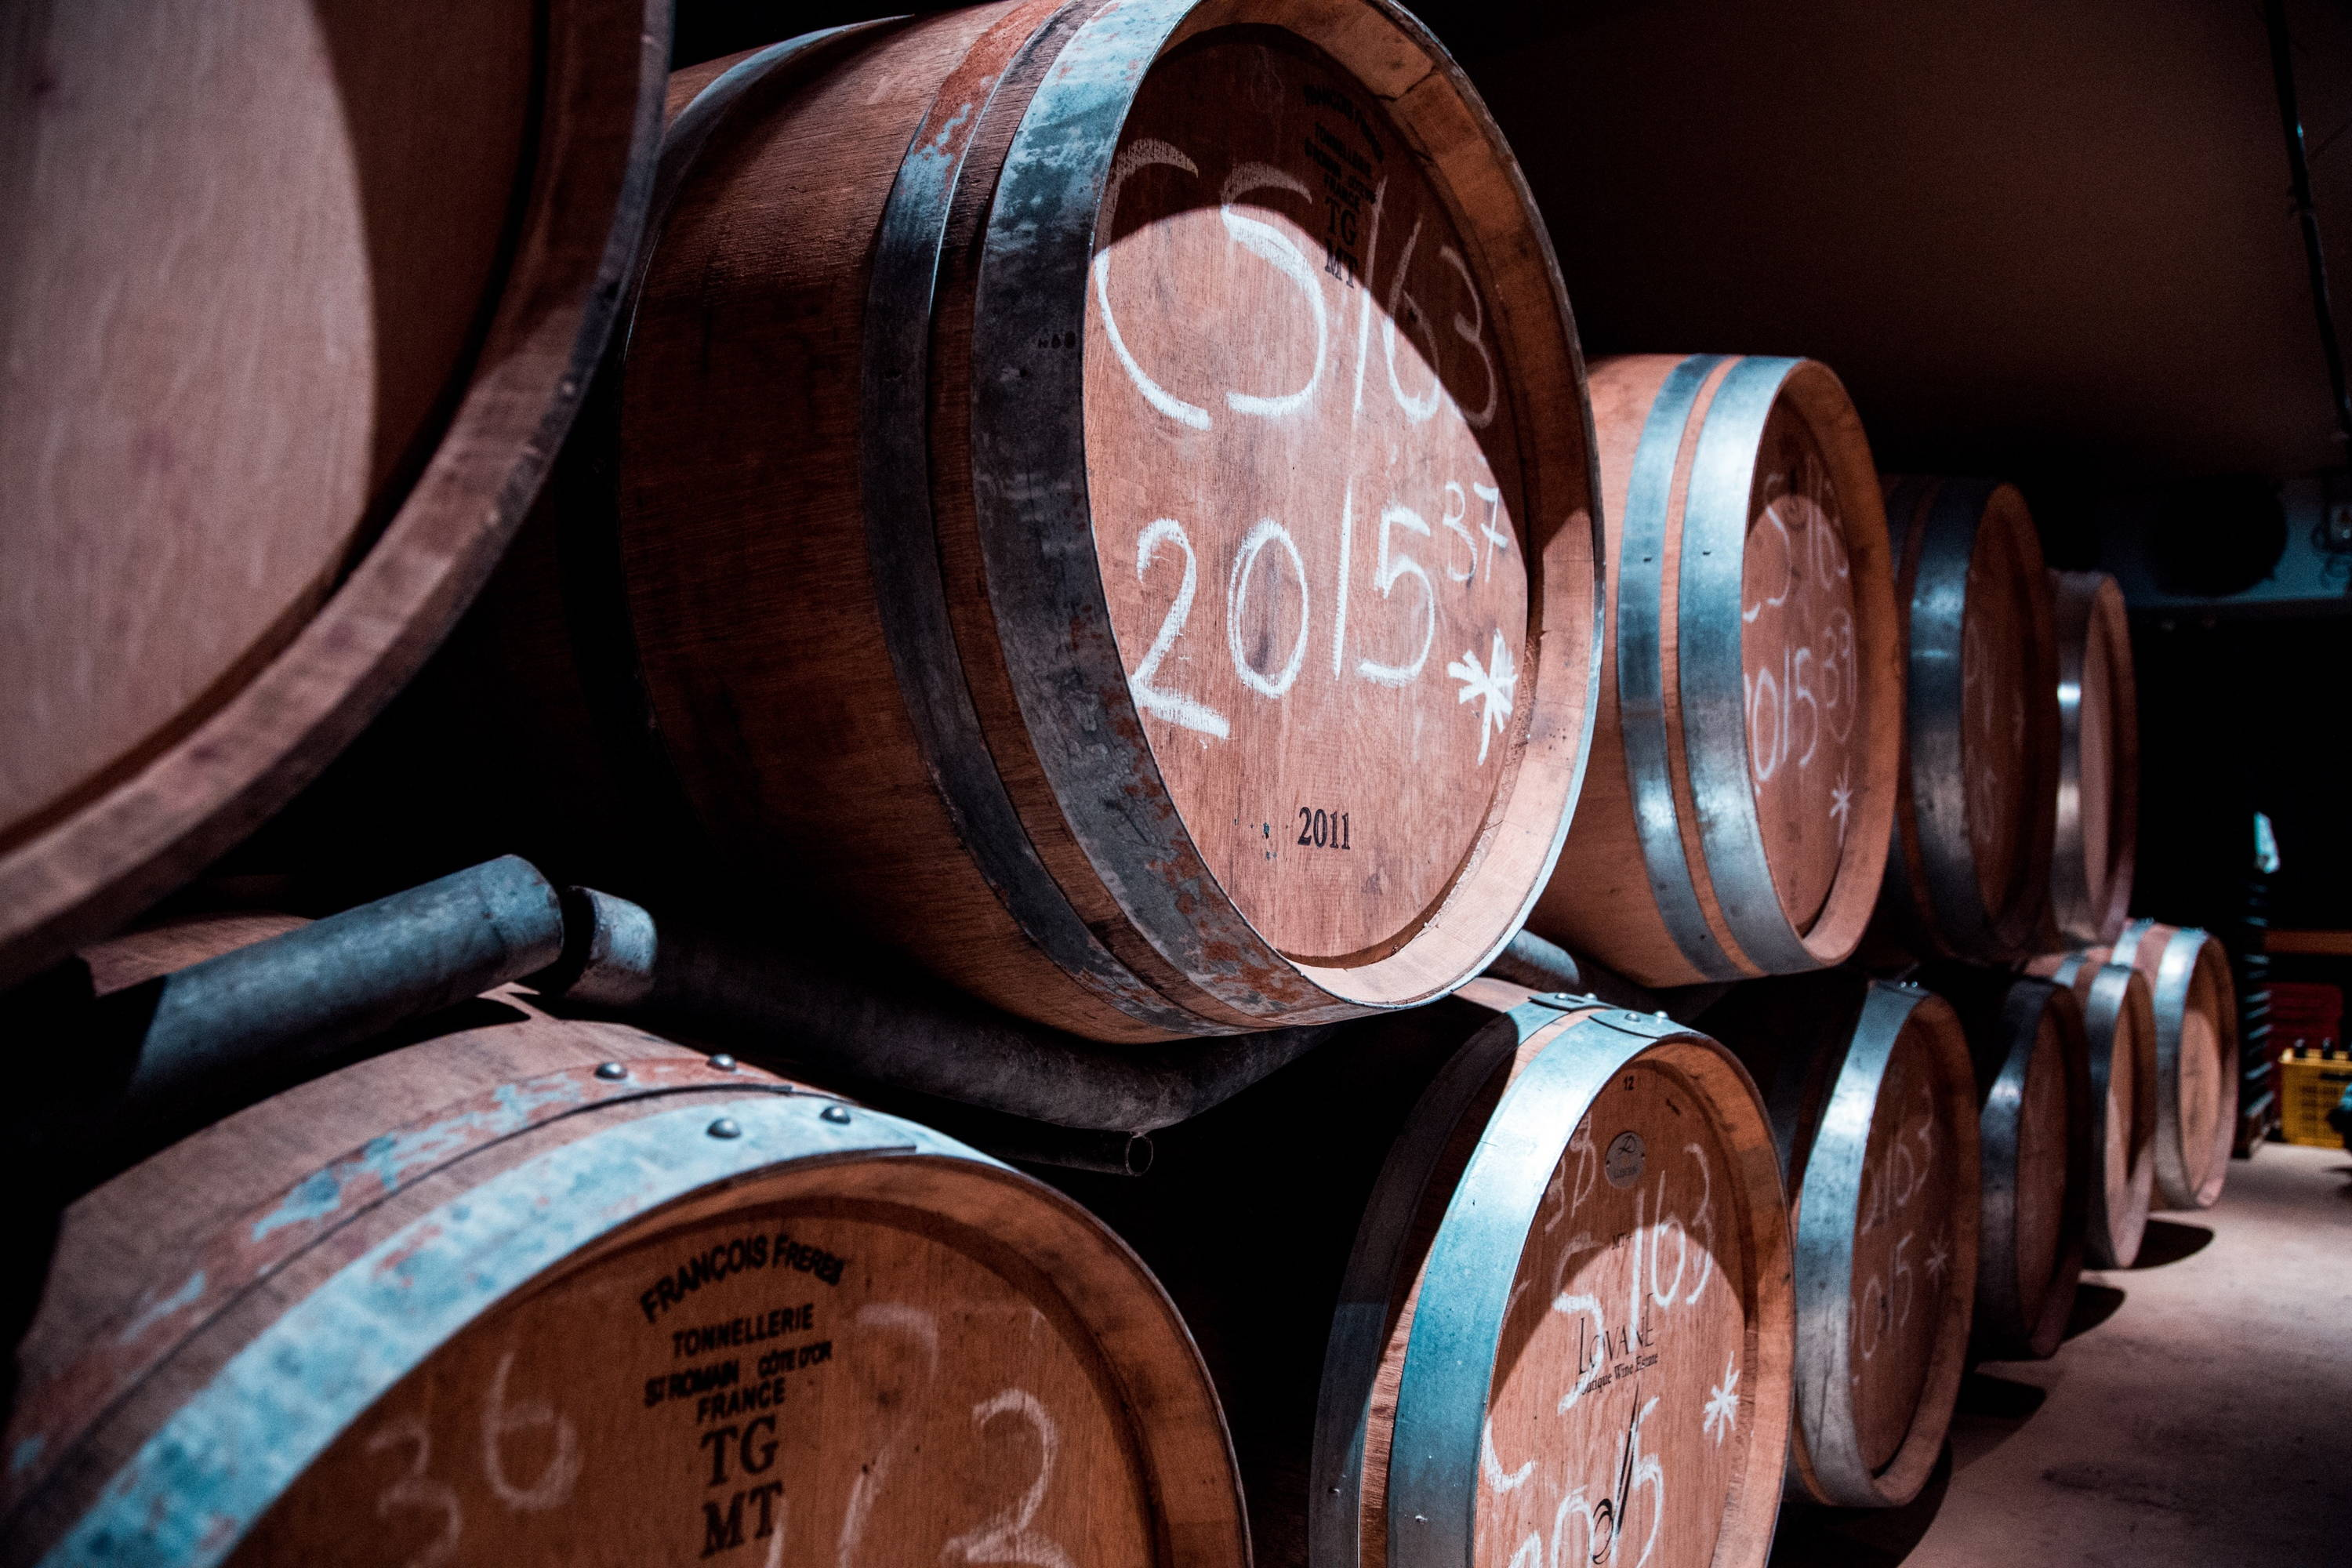 Wine barrels in storage displaying dated wine to compare old world vs new world wine making techniques.